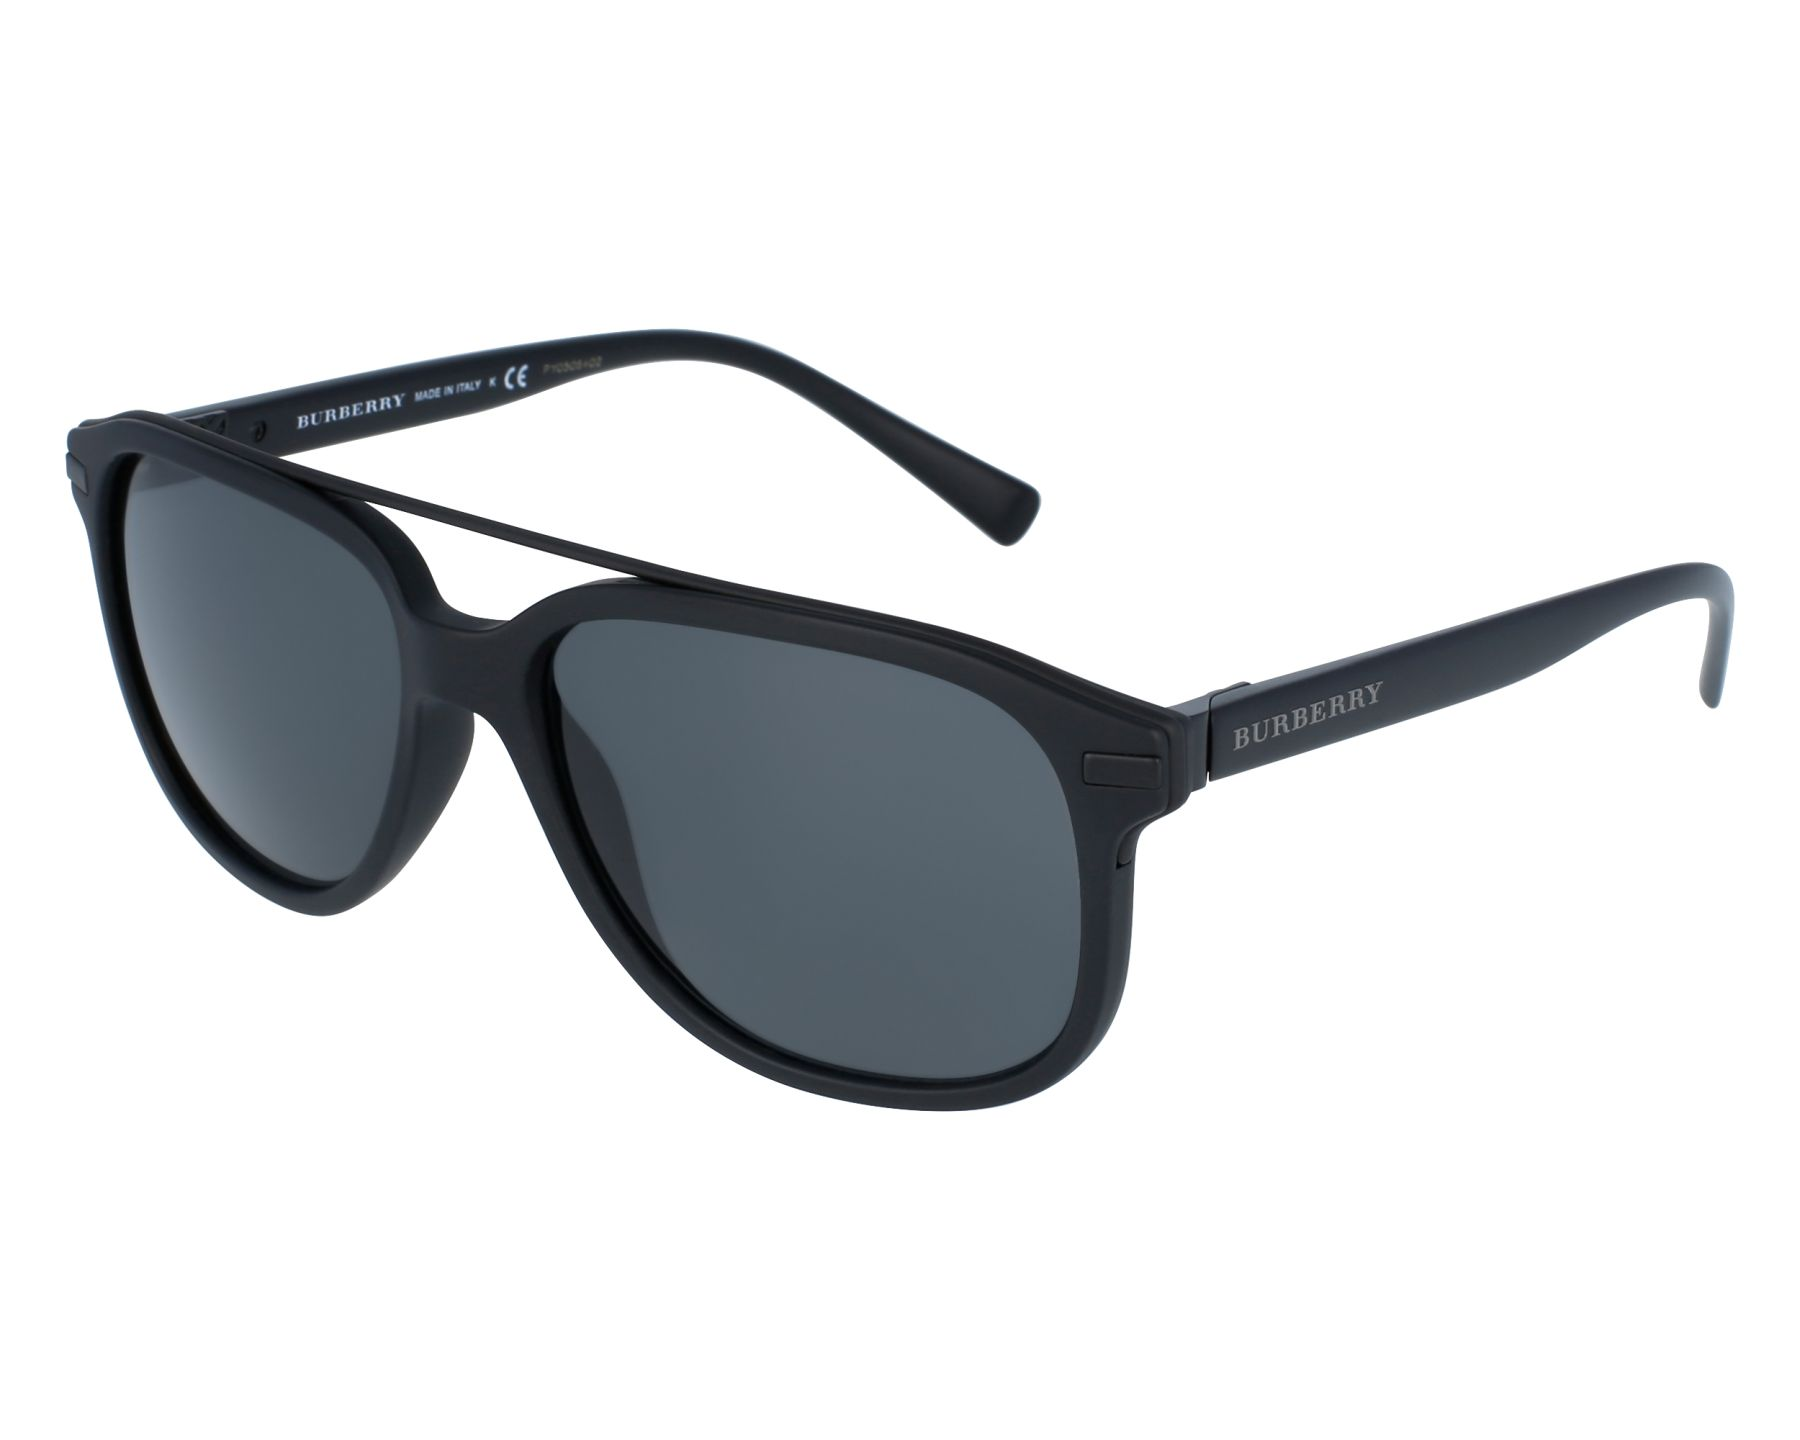 fea5f1ac111 Sunglasses Burberry BE-4233 3464 87 57-16 Black front view